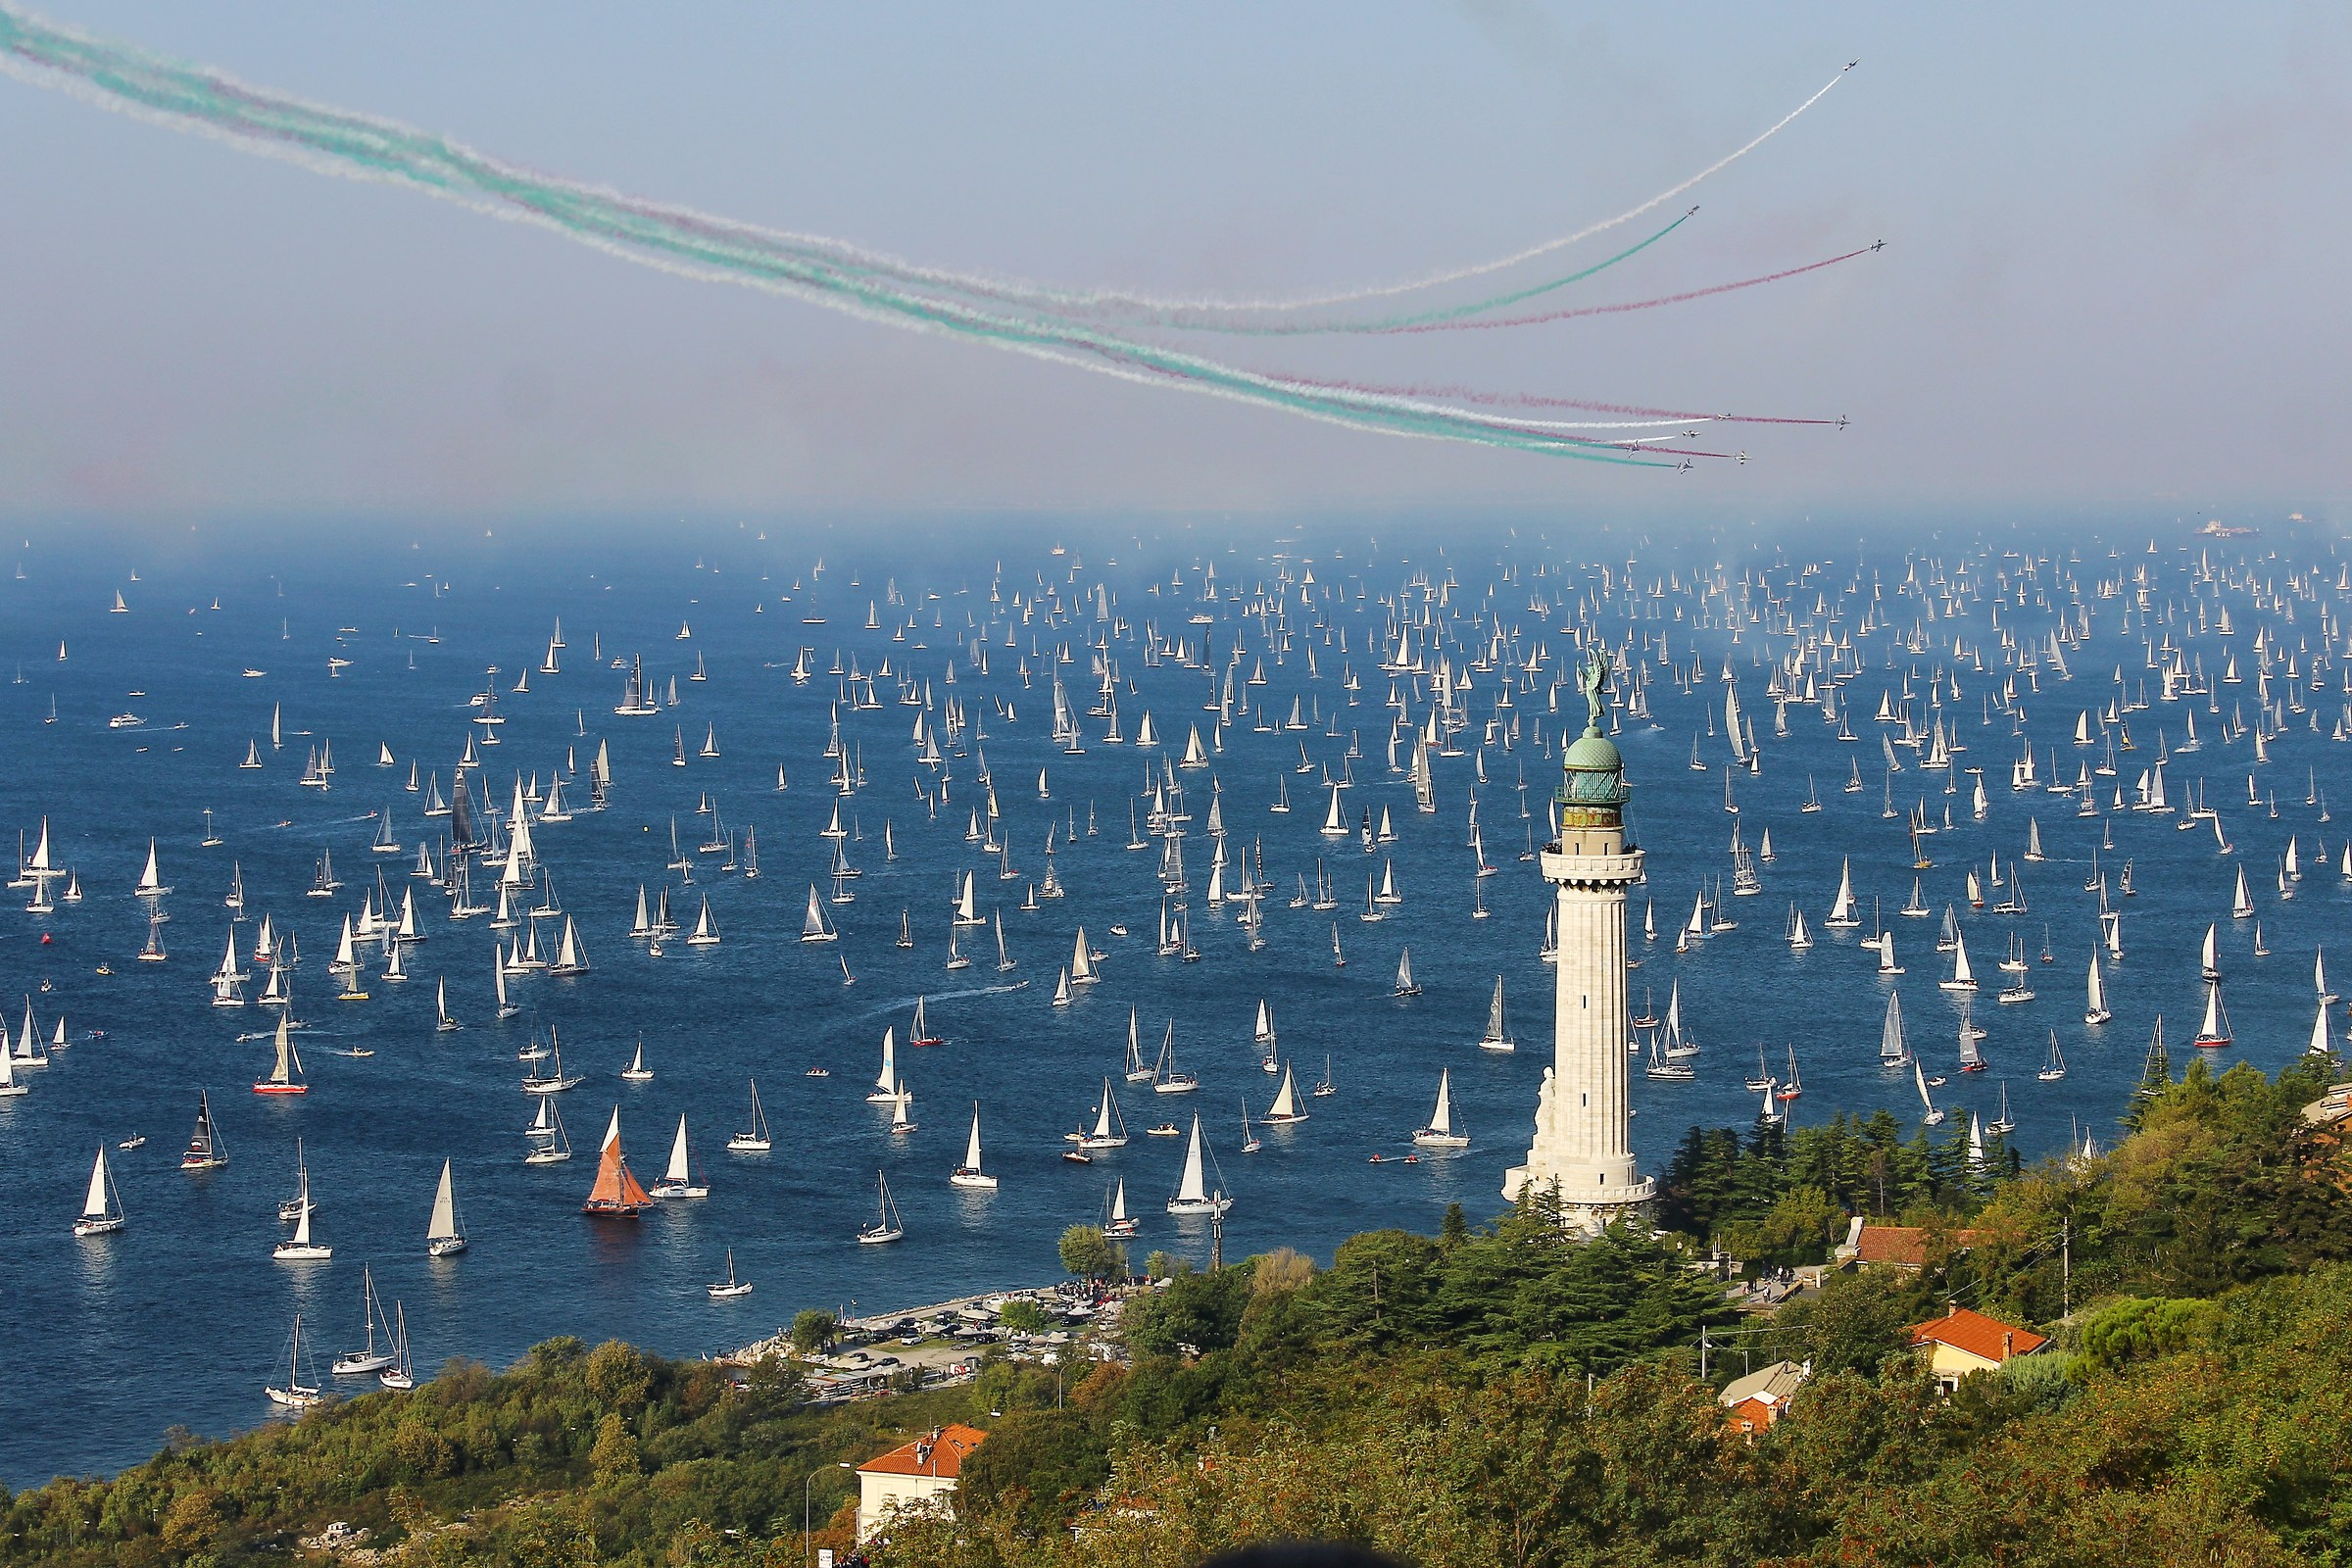 The departure of the 50th Barcolana...